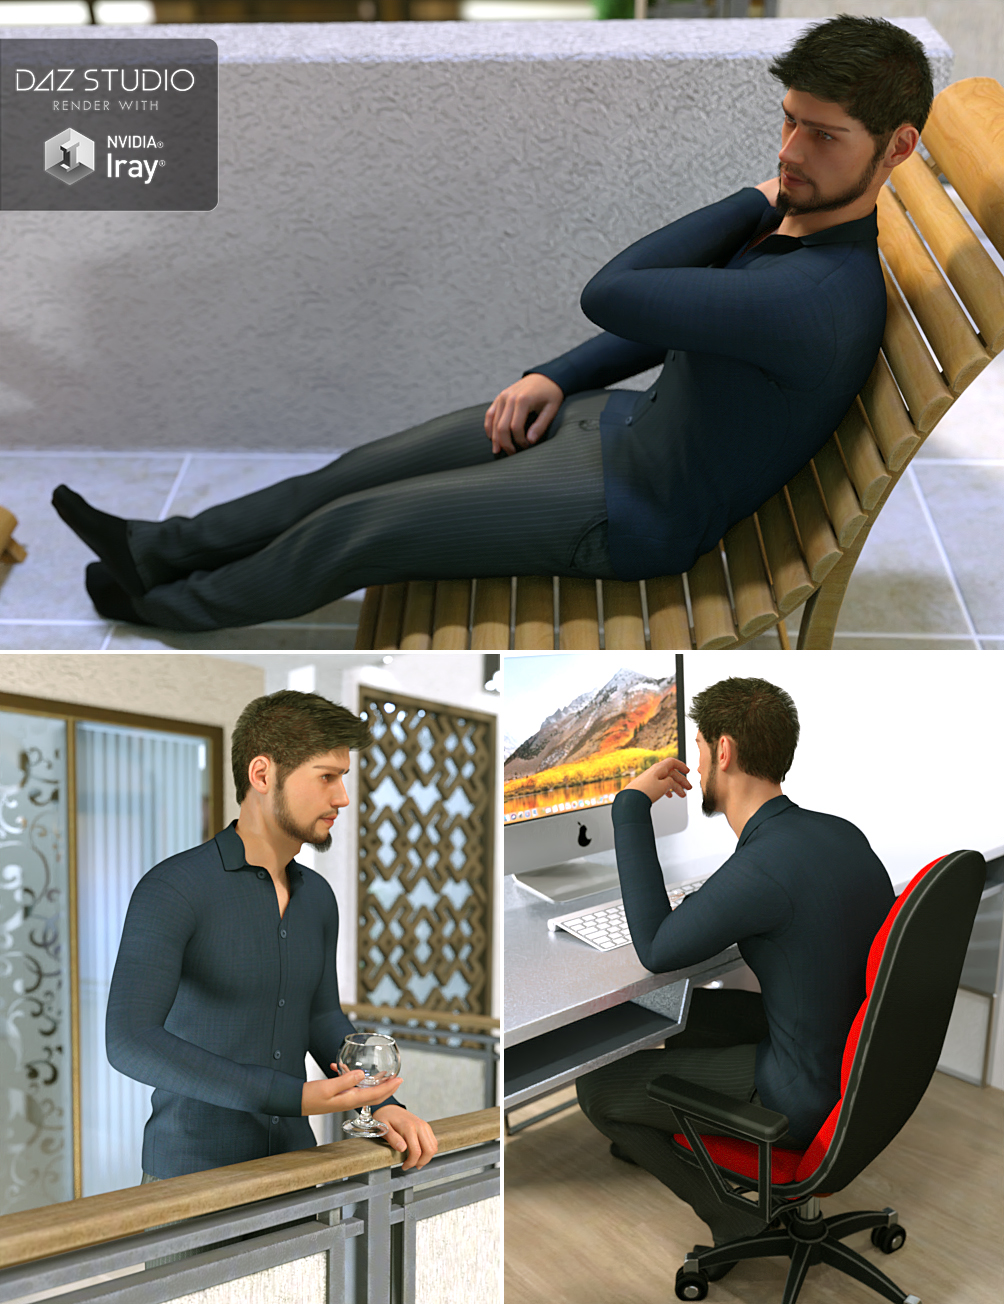 Hearth & Home for Genesis 8 Male by: Three Wishes, 3D Models by Daz 3D